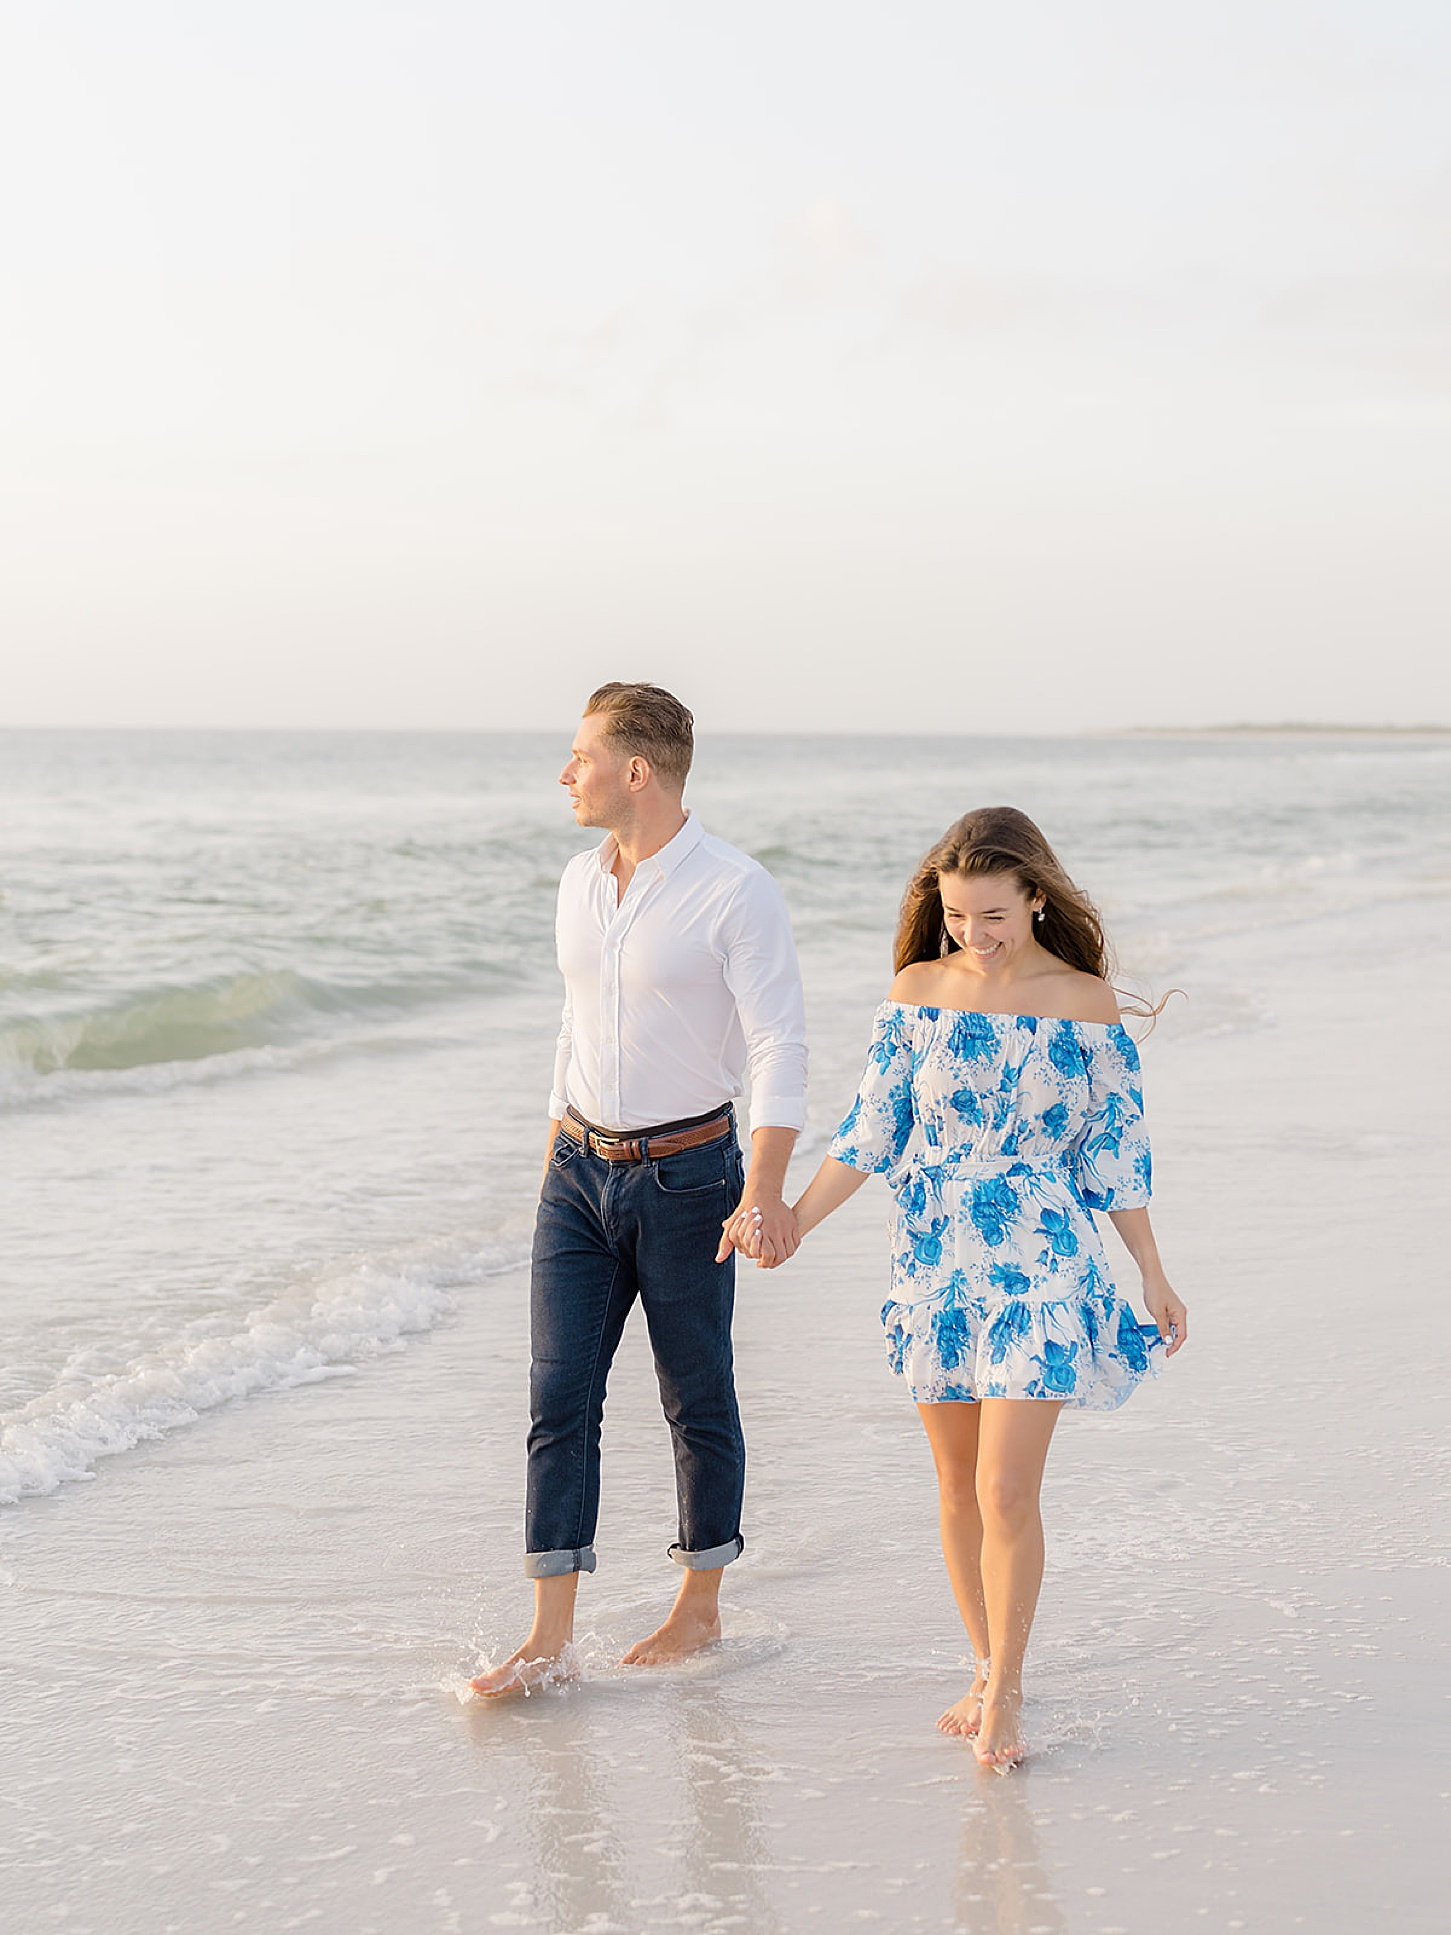 Palm Beach Florida Engagement Photography by Magdalena Studios Lyn and Paul 0027